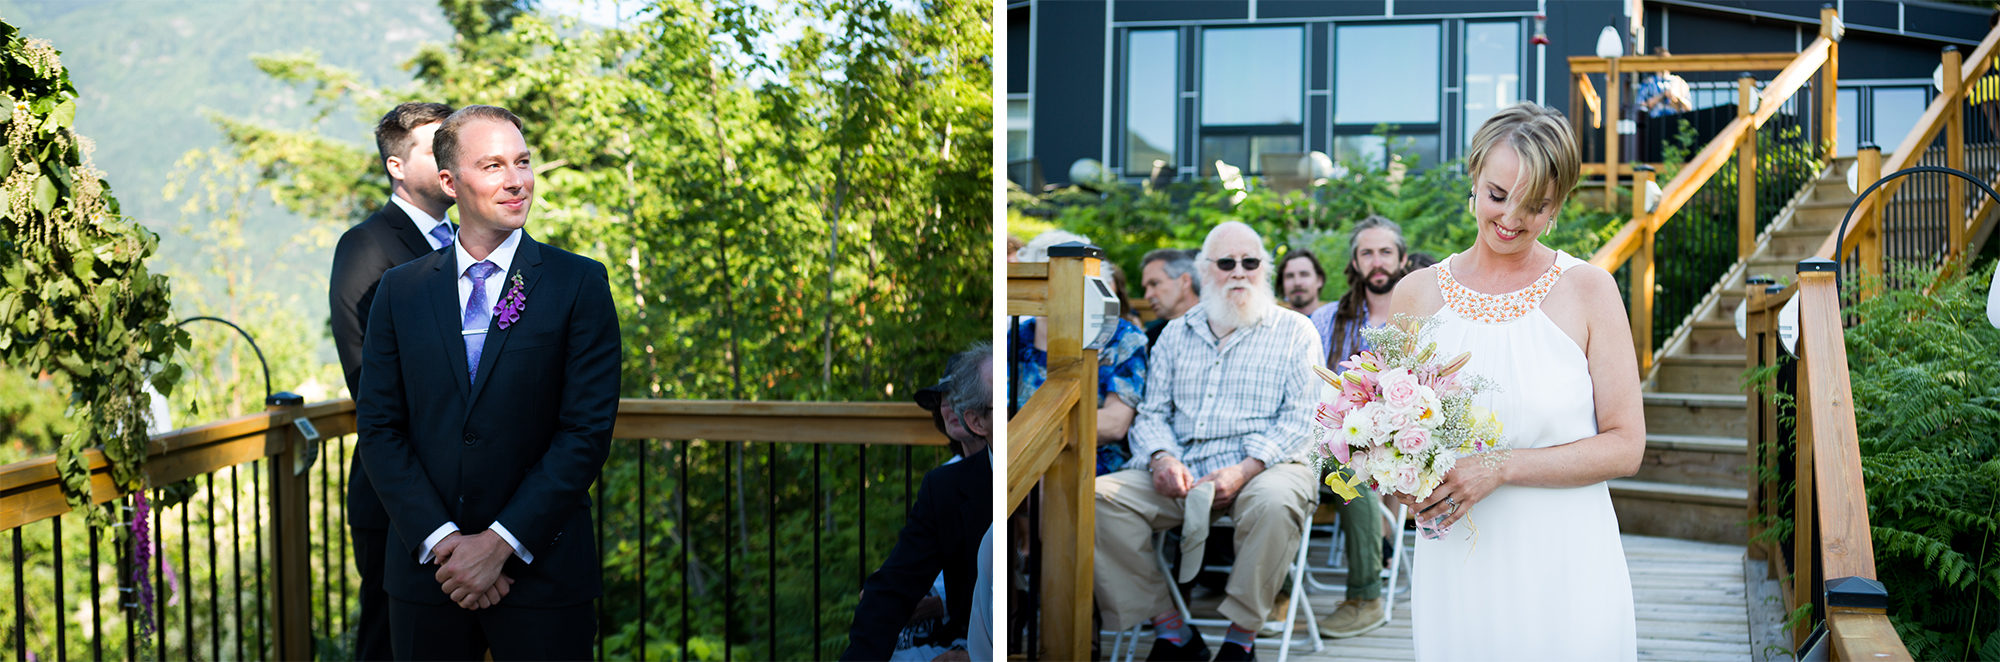 Ceremony Hope Wedding British Columbia American Creek Lodge Zsuzsi Pal Photography